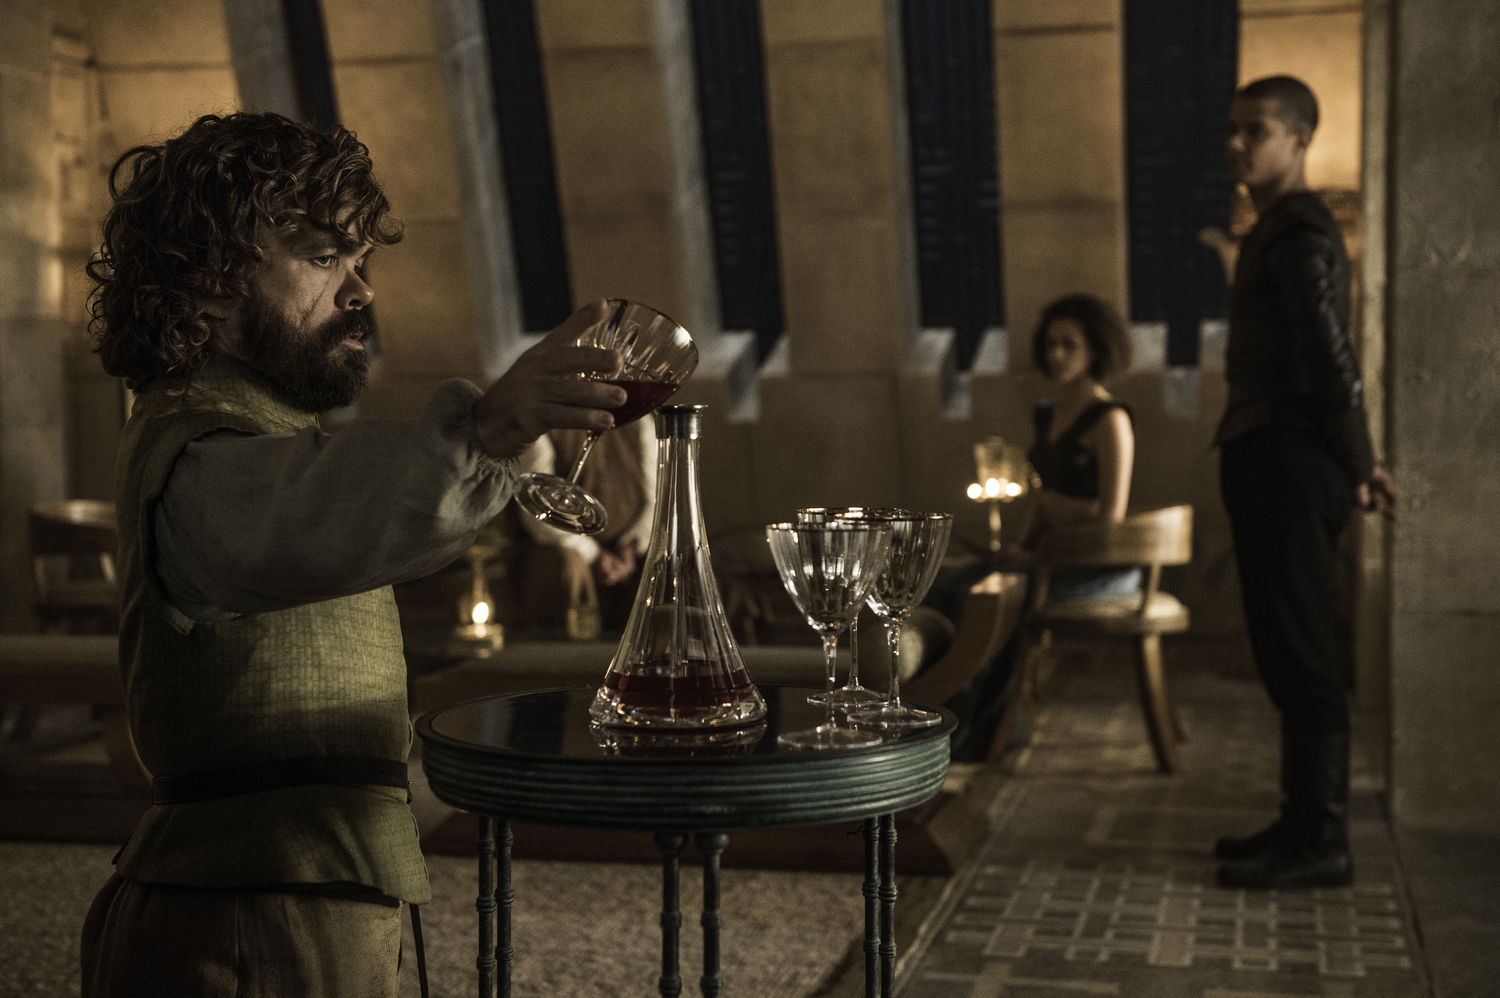 HBO won't send out advance 'Game of Thrones' screeners to avoid piracy